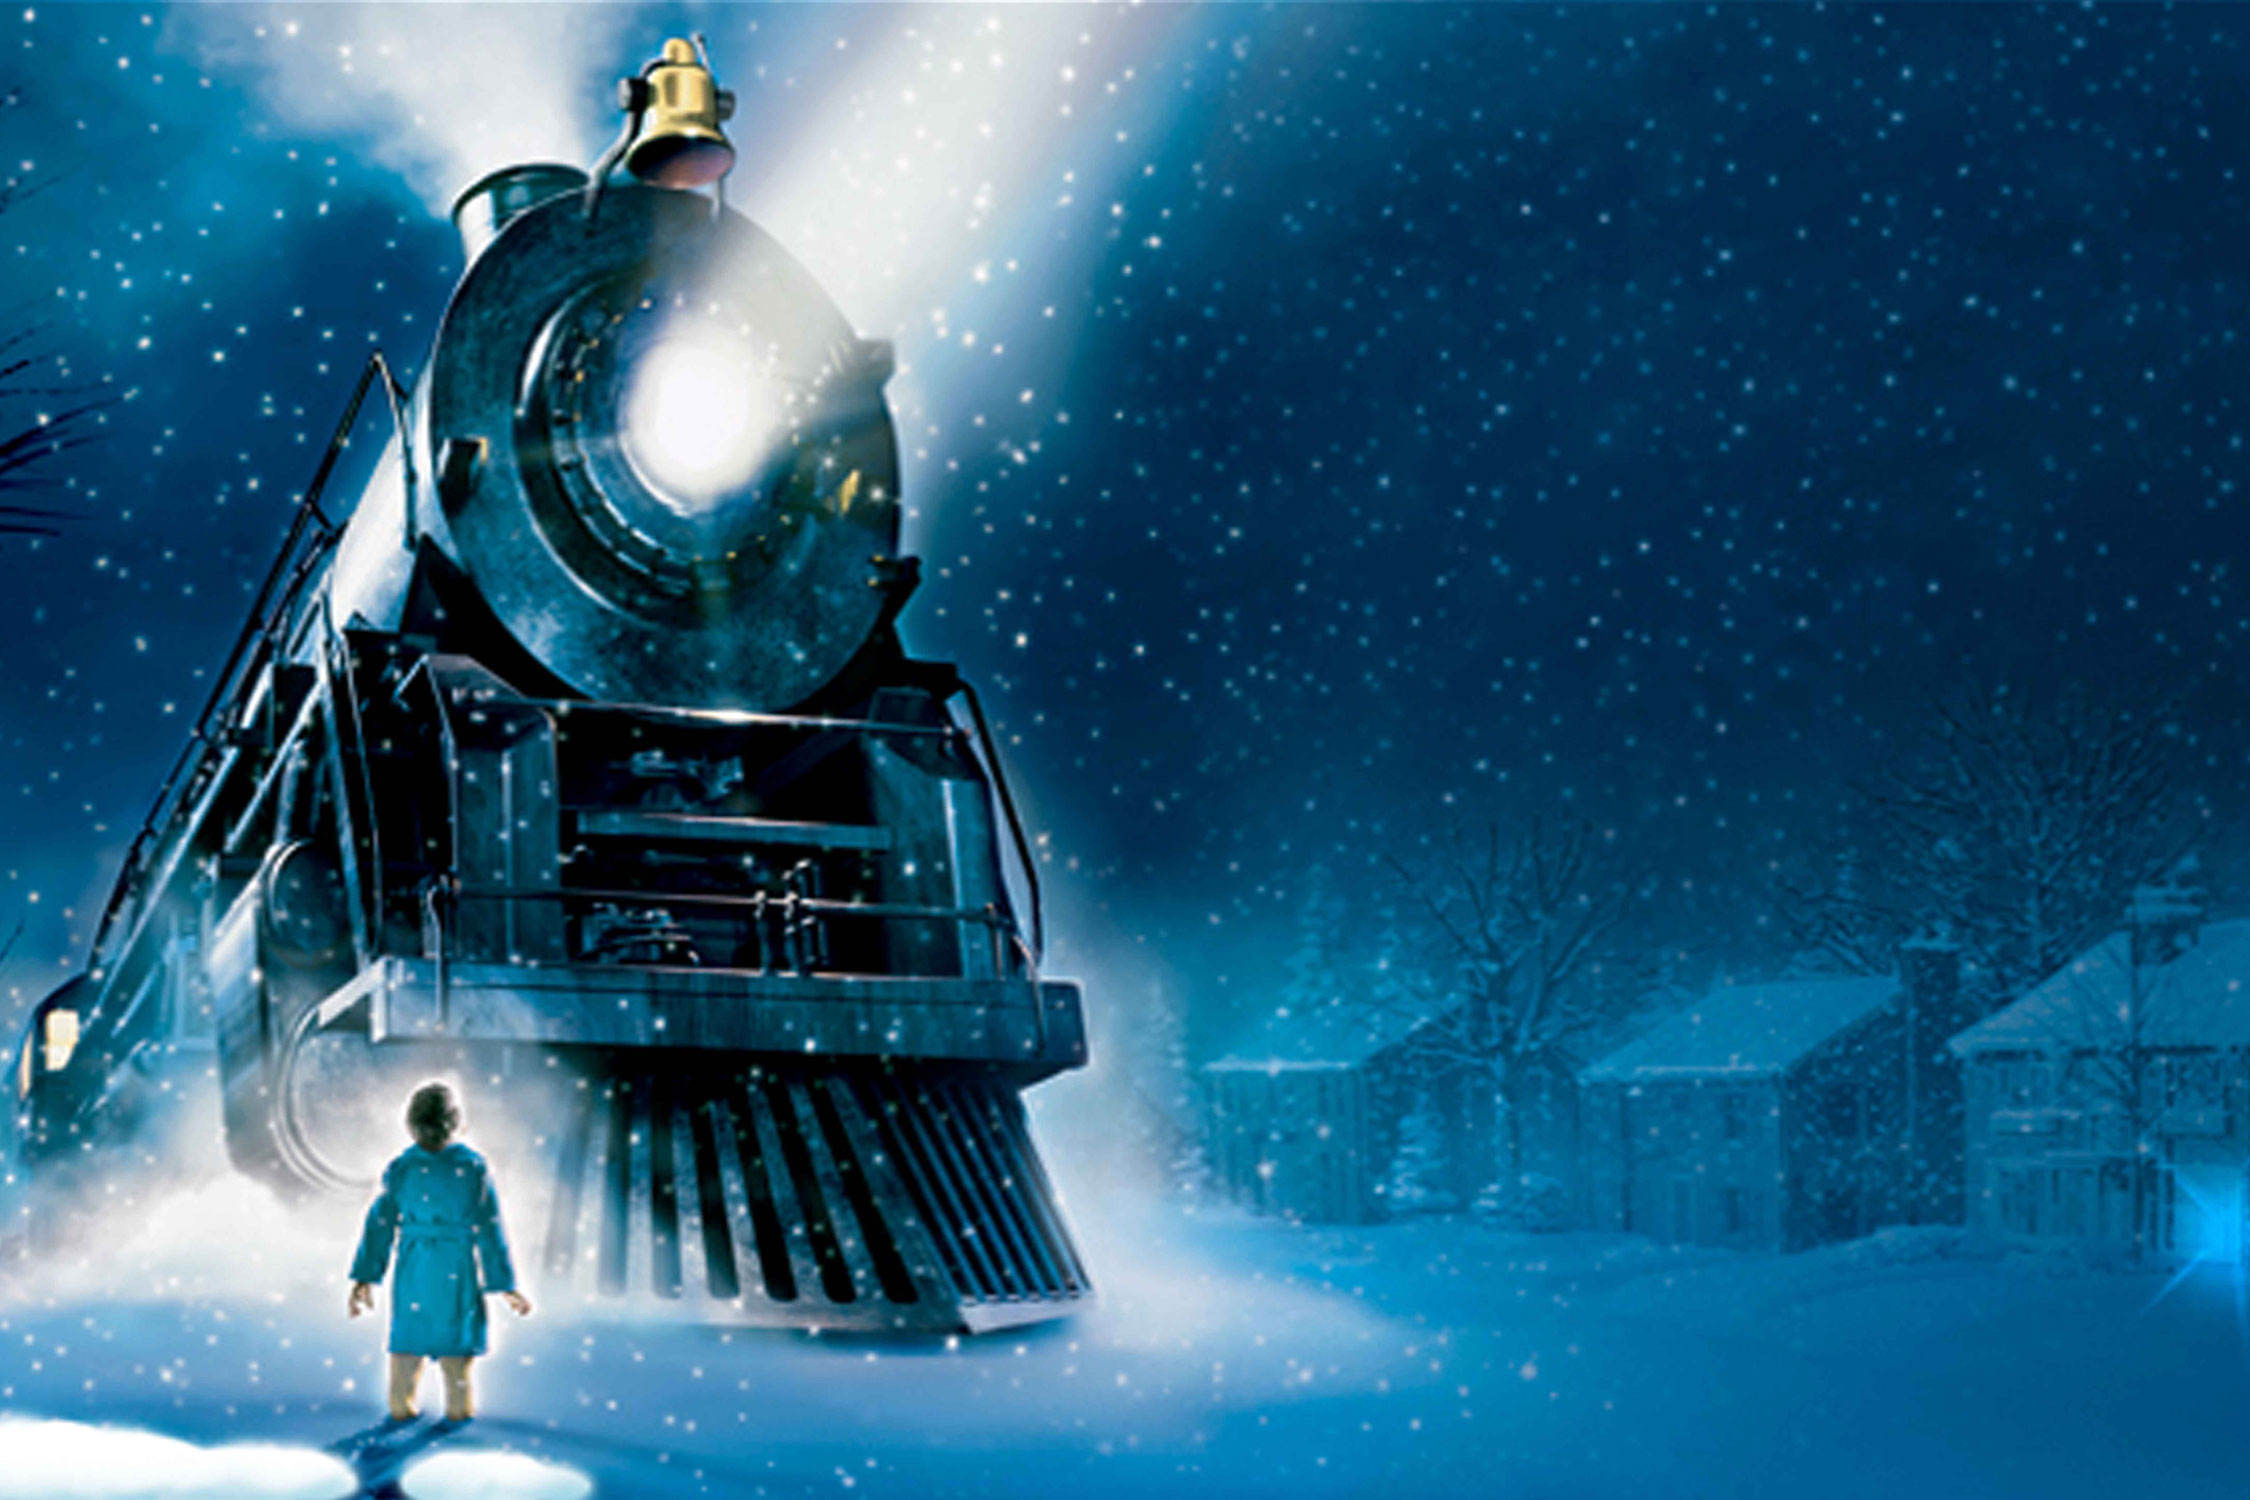 Revisiting The Polar Express 2004 Foote Friends On Film